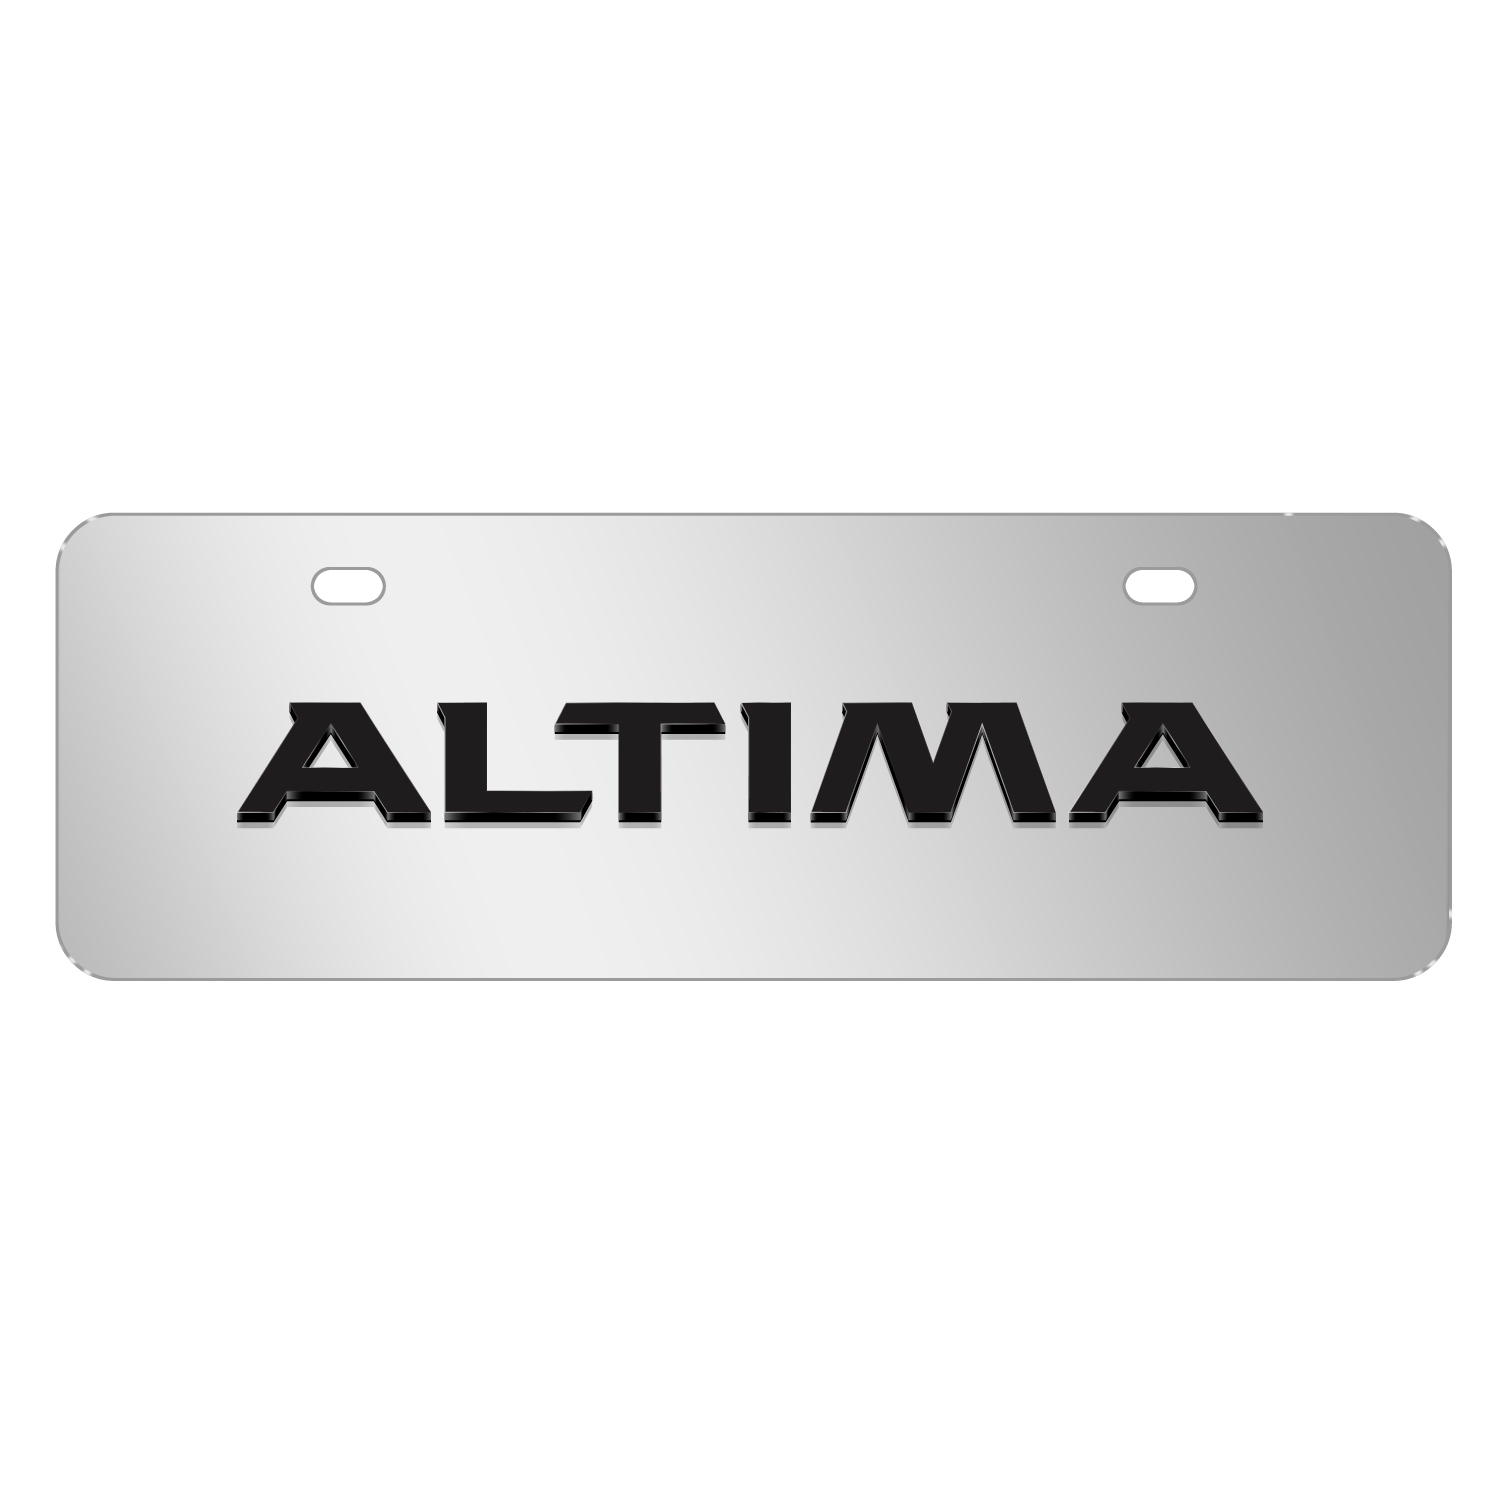 """Nissan Altima 3D Mirror Chrome 12""""x4"""" Half-Size Stainless Steel License Plate"""